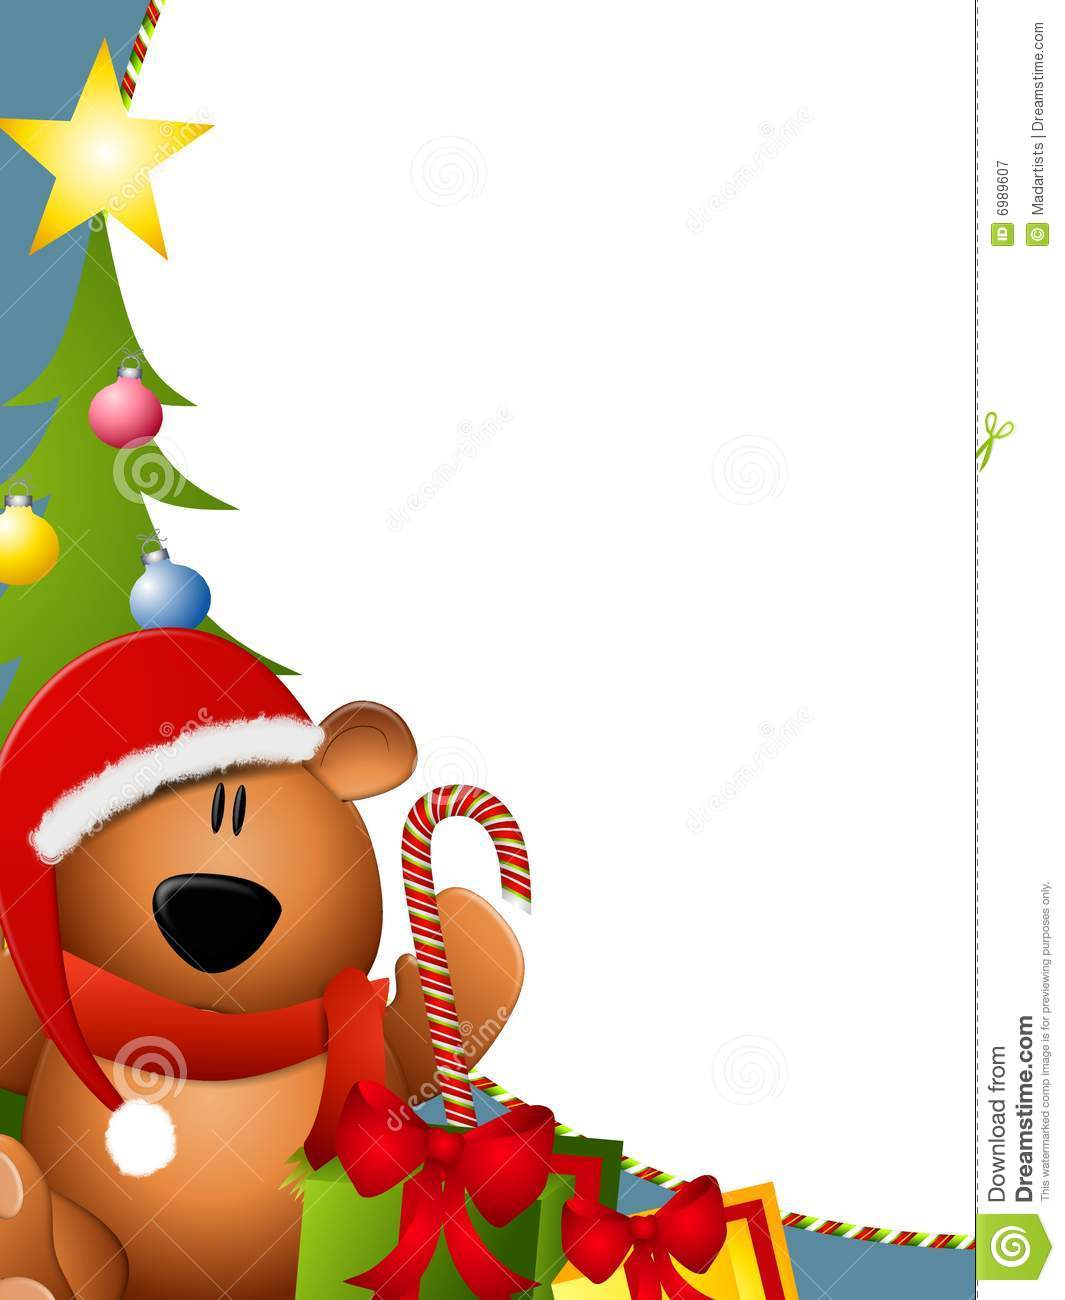 Christmas Toys Border : Christmas bear border stock illustration